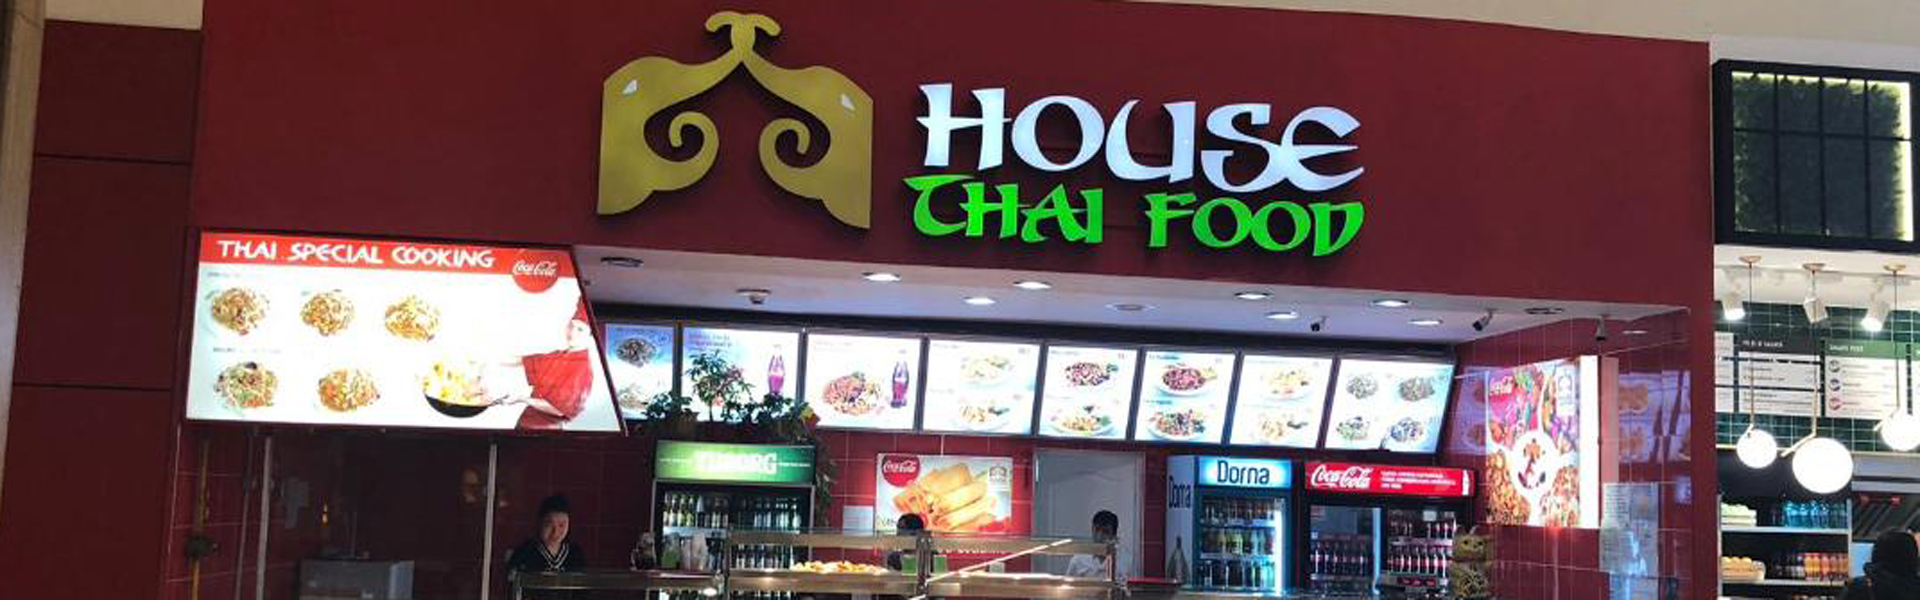 House Thai Food Timisoara